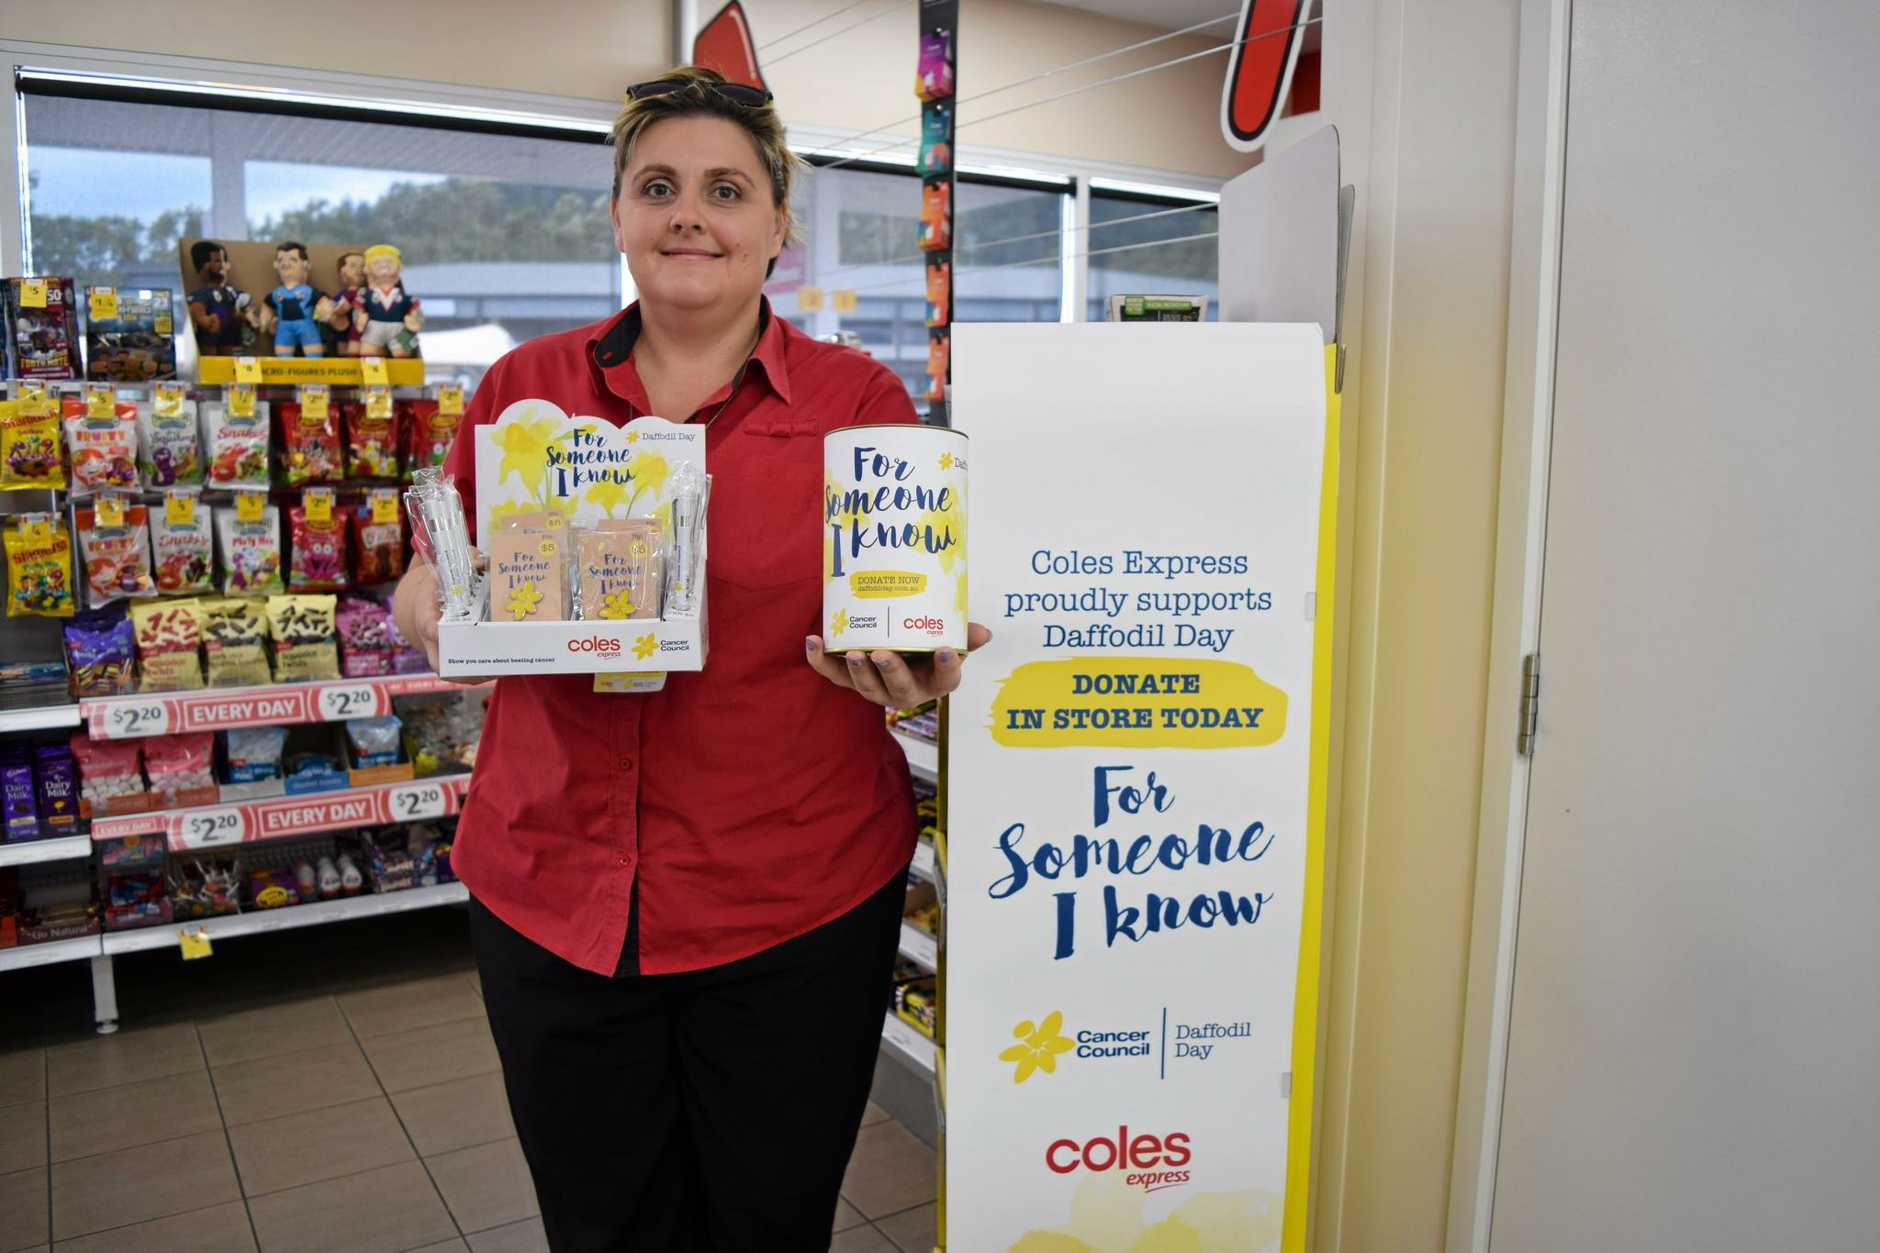 CLOSE TO HOME: Coles Express Cannonvale manager Rachel Jensen has her own reasons for getting behind Daffodil Day.